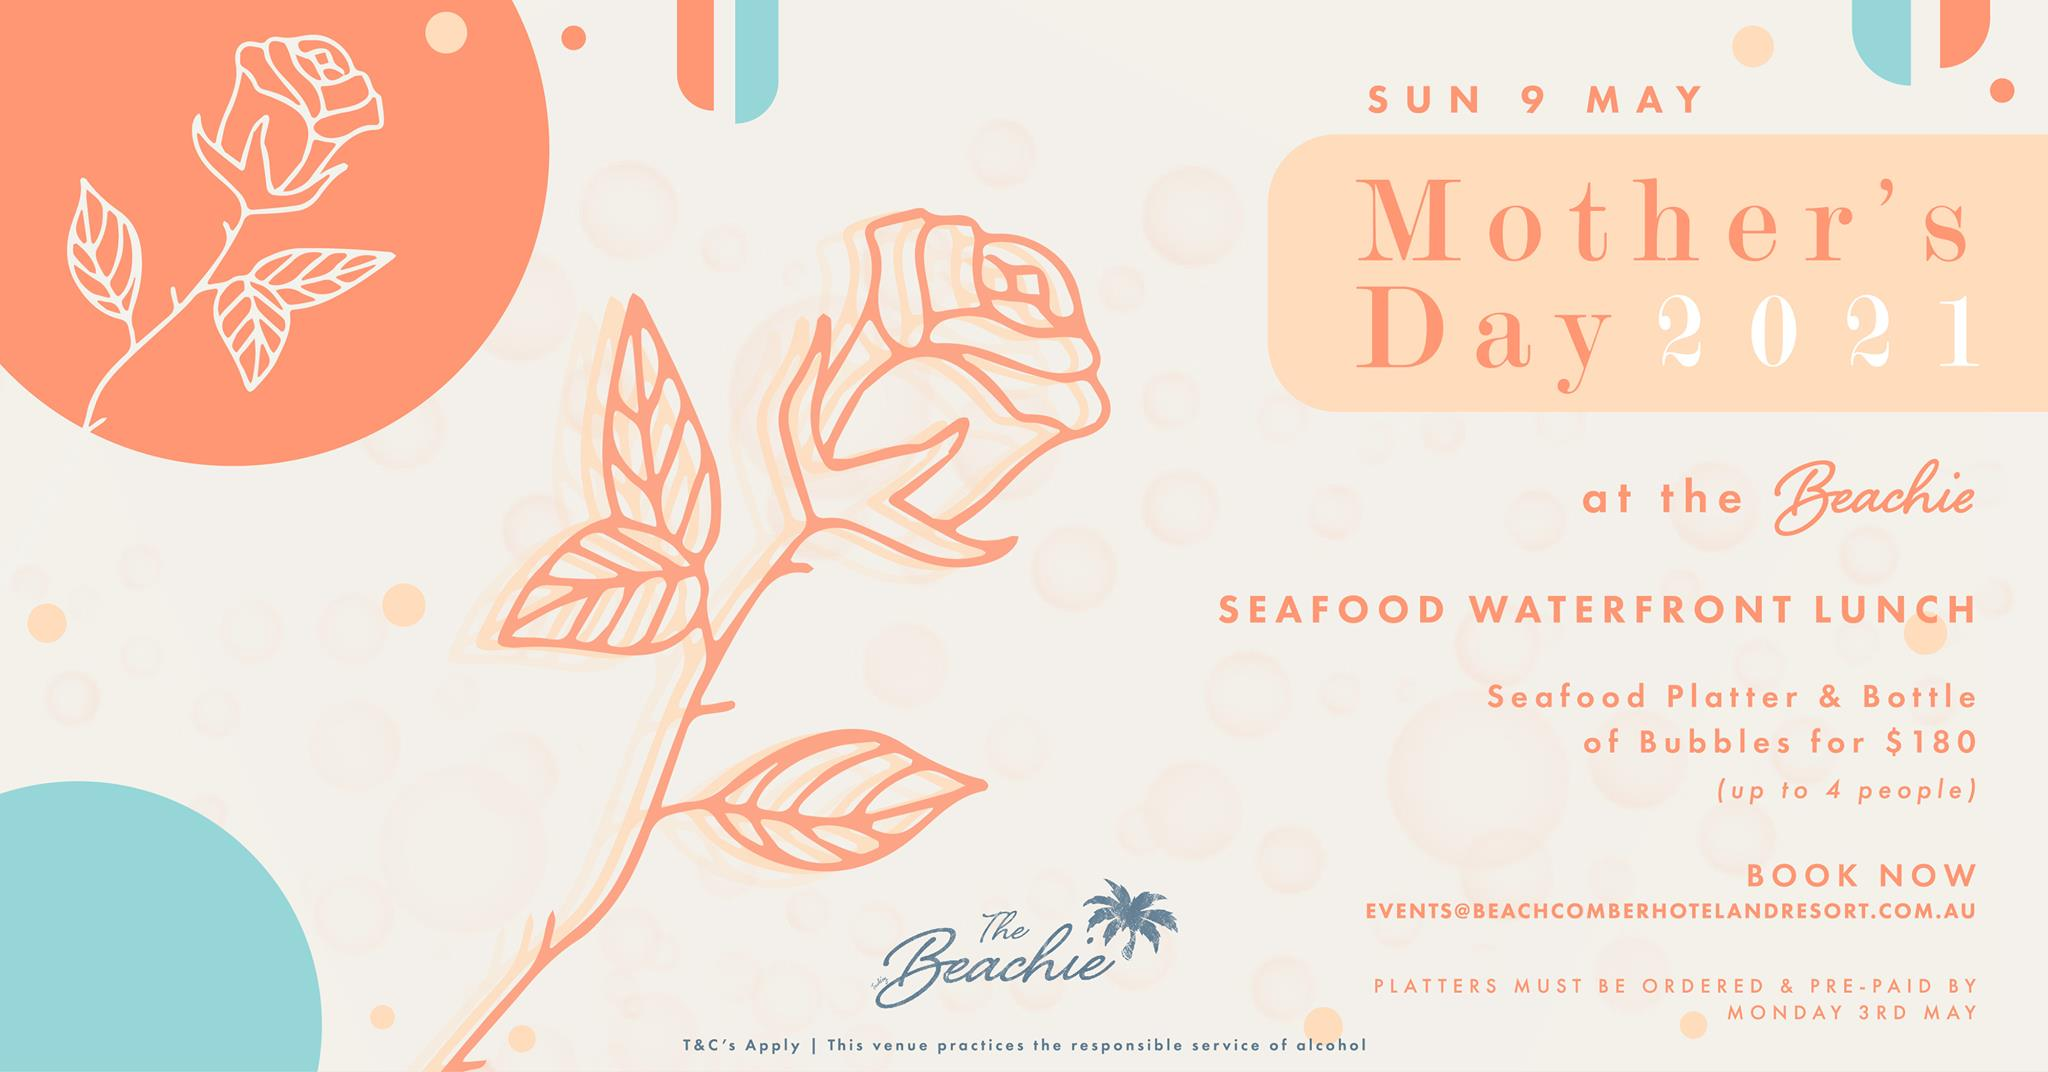 Mother's Day at the Beachie